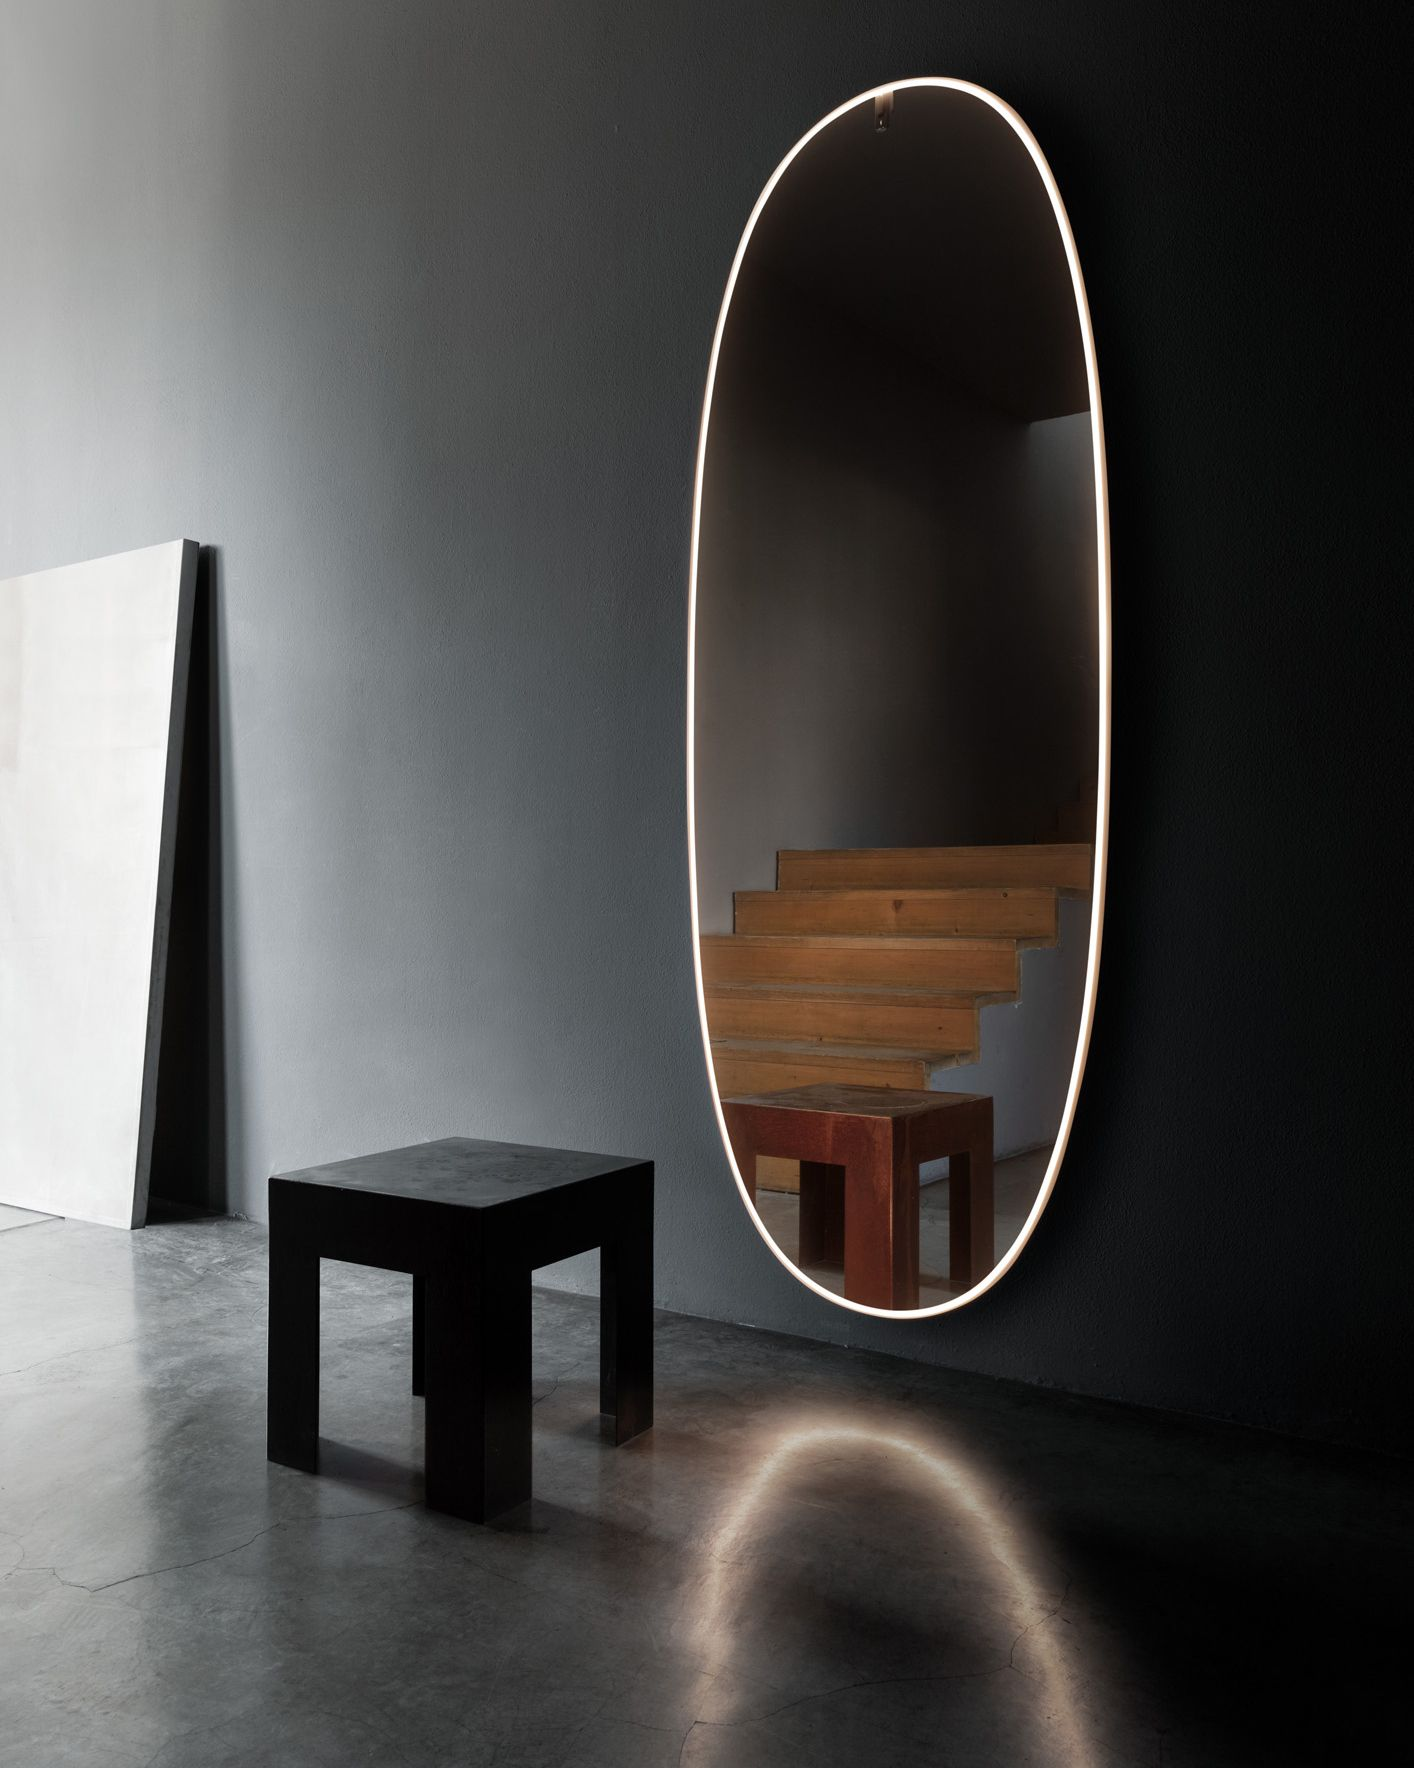 La Plus Belle Lamp By Flos Starck Has Designed For Flos An Elegant Oval Mirror For Walls Two Meters High With A Li Illuminated Mirrors Flos Mirror Designs